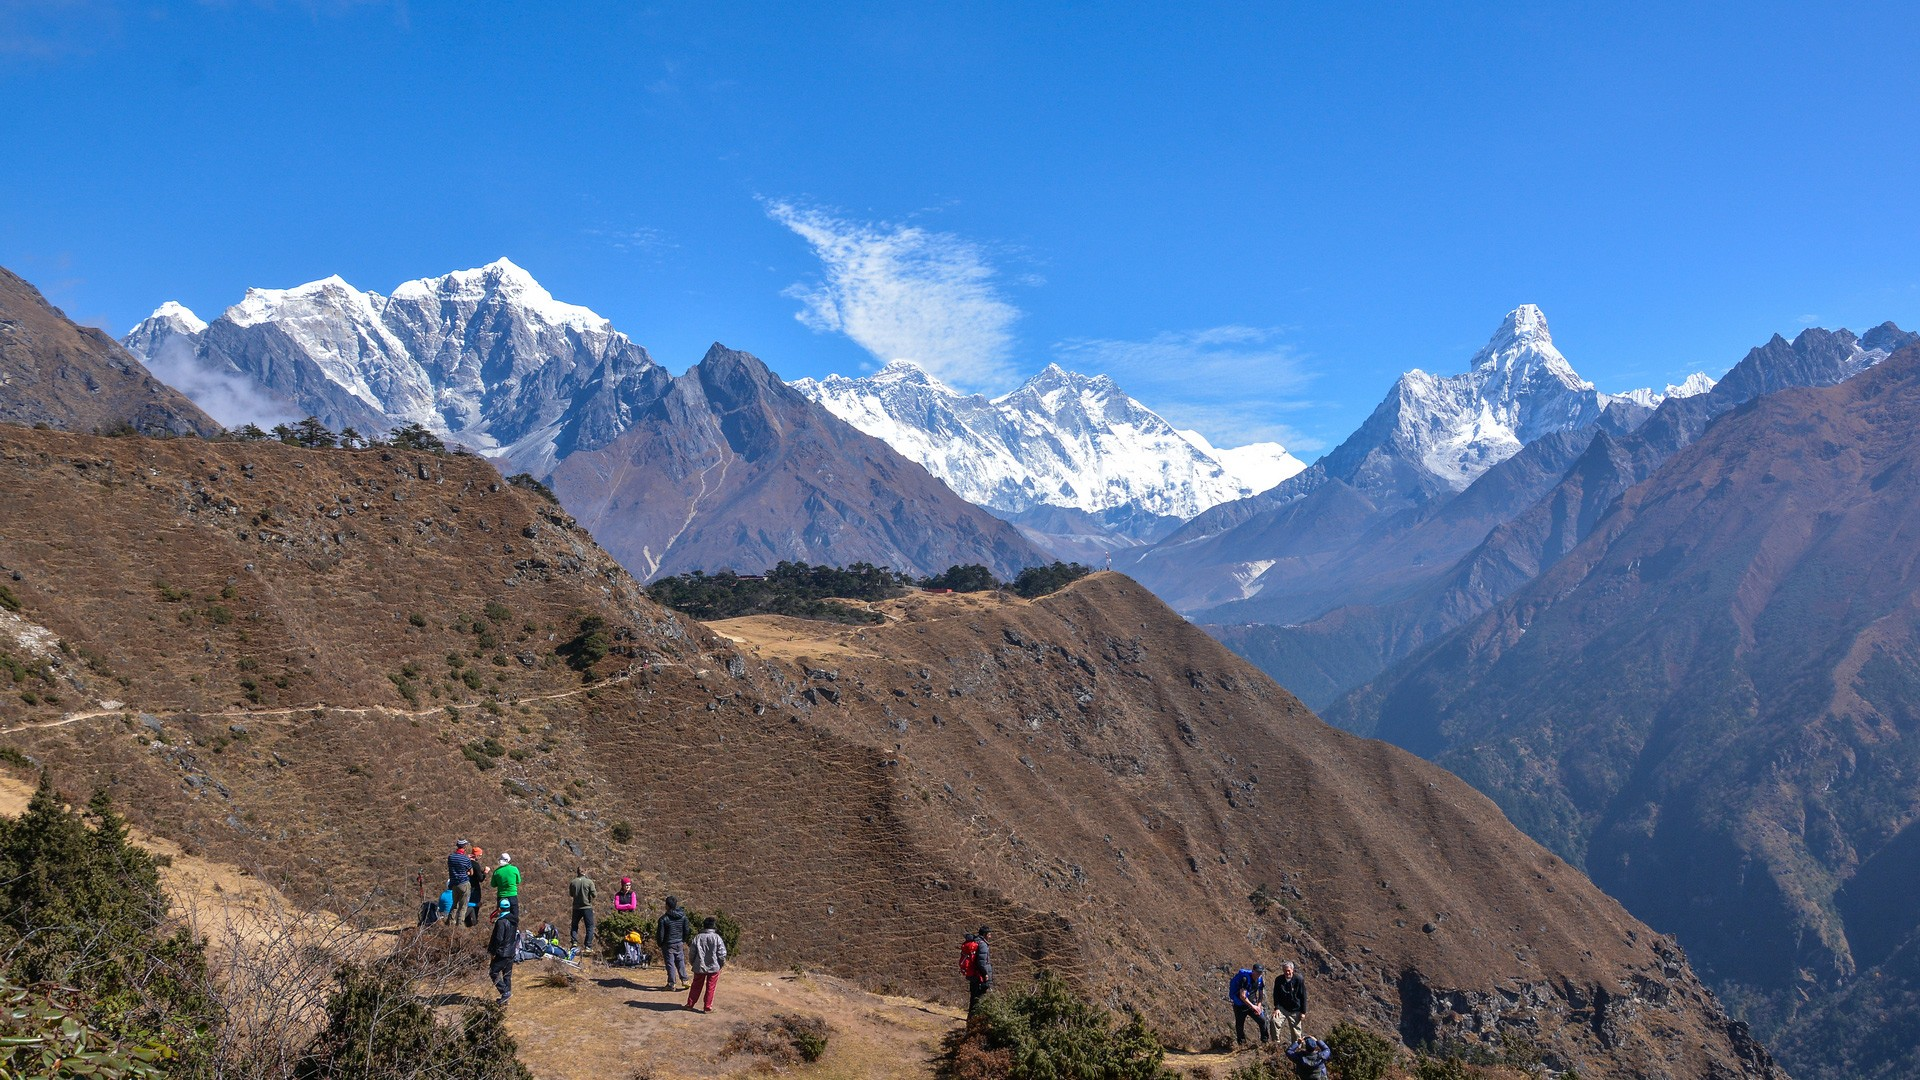 13 Best Places To Visit In Nepal / Sagarmatha National Park